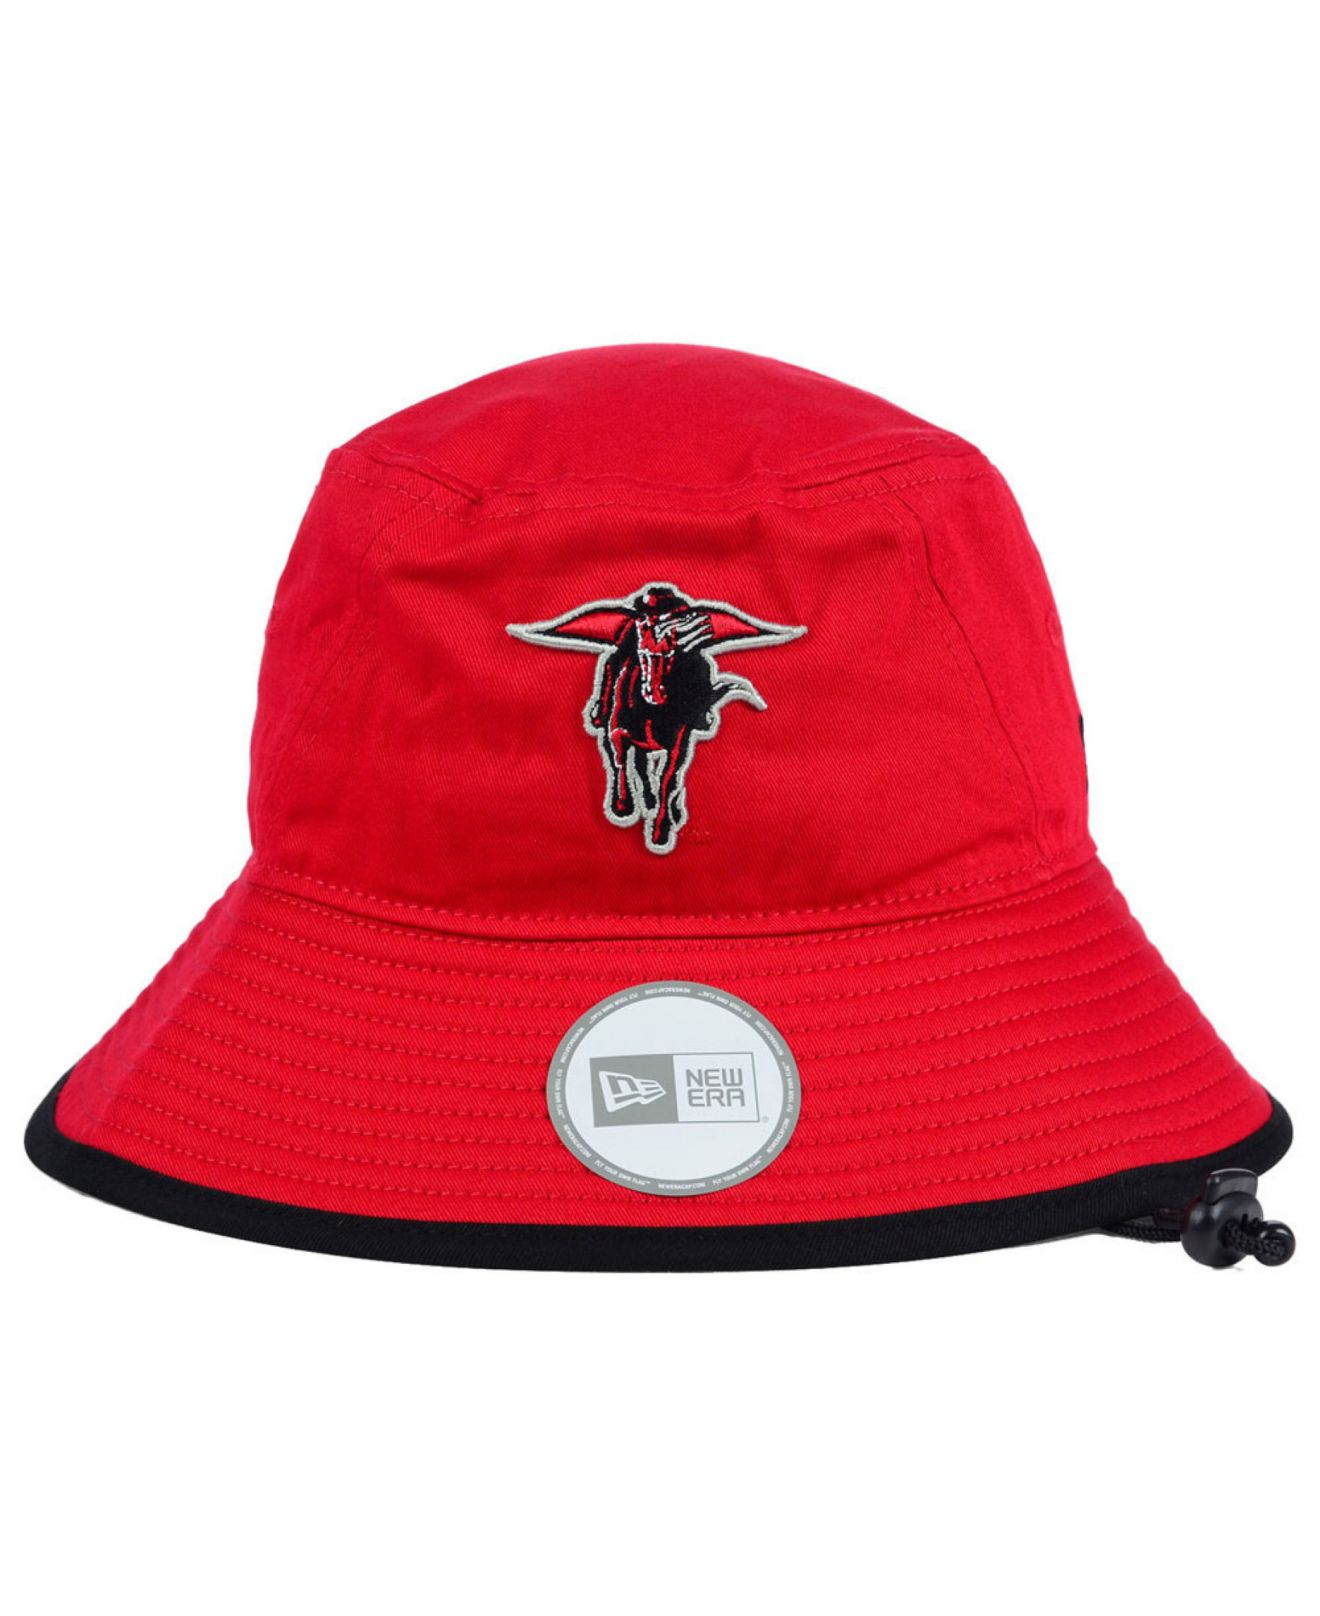 newest 3b19b 66162 ... australia lyst ktz texas tech red raiders tip bucket hat in red for men  a8907 3e605